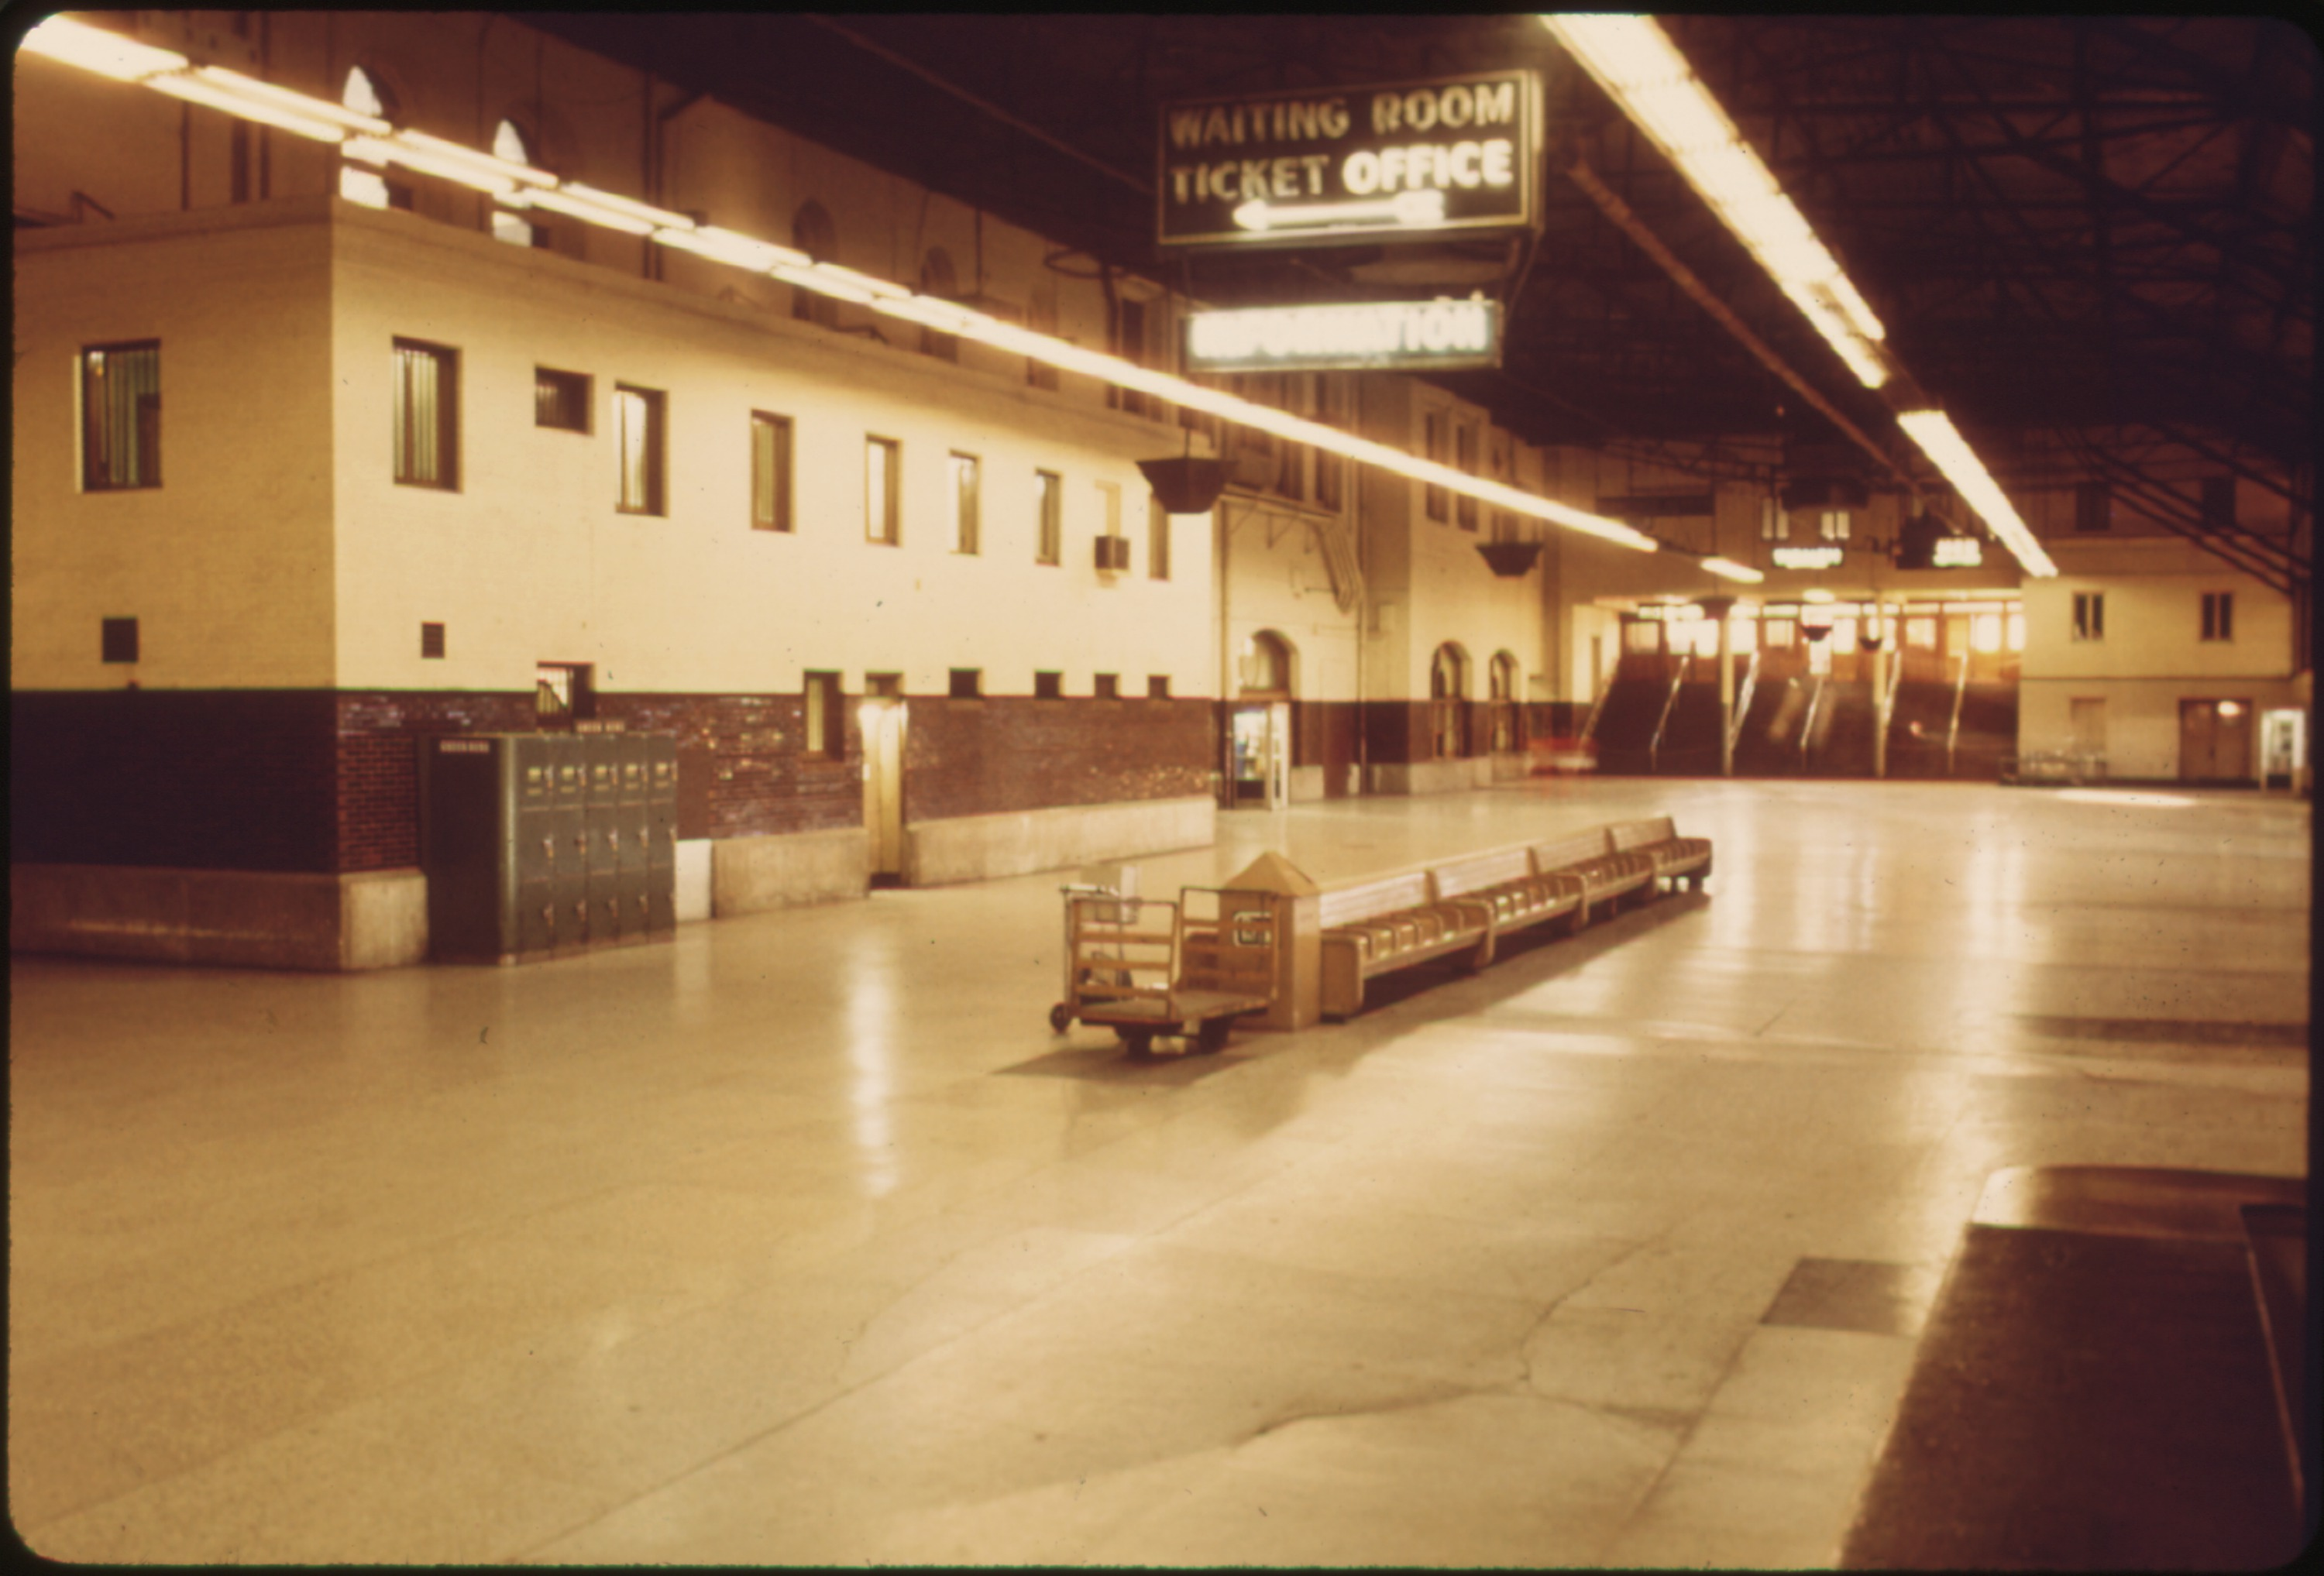 MISSOURI, UNION STATION AS IT APPEARED IN THE SUMMER OF 1974. AMTRAK HAS RENOVATED MANY OF ITS TERMINALS SINCE TAKING RESPONSIBILITY FOR MOST U.S. INTERCITY